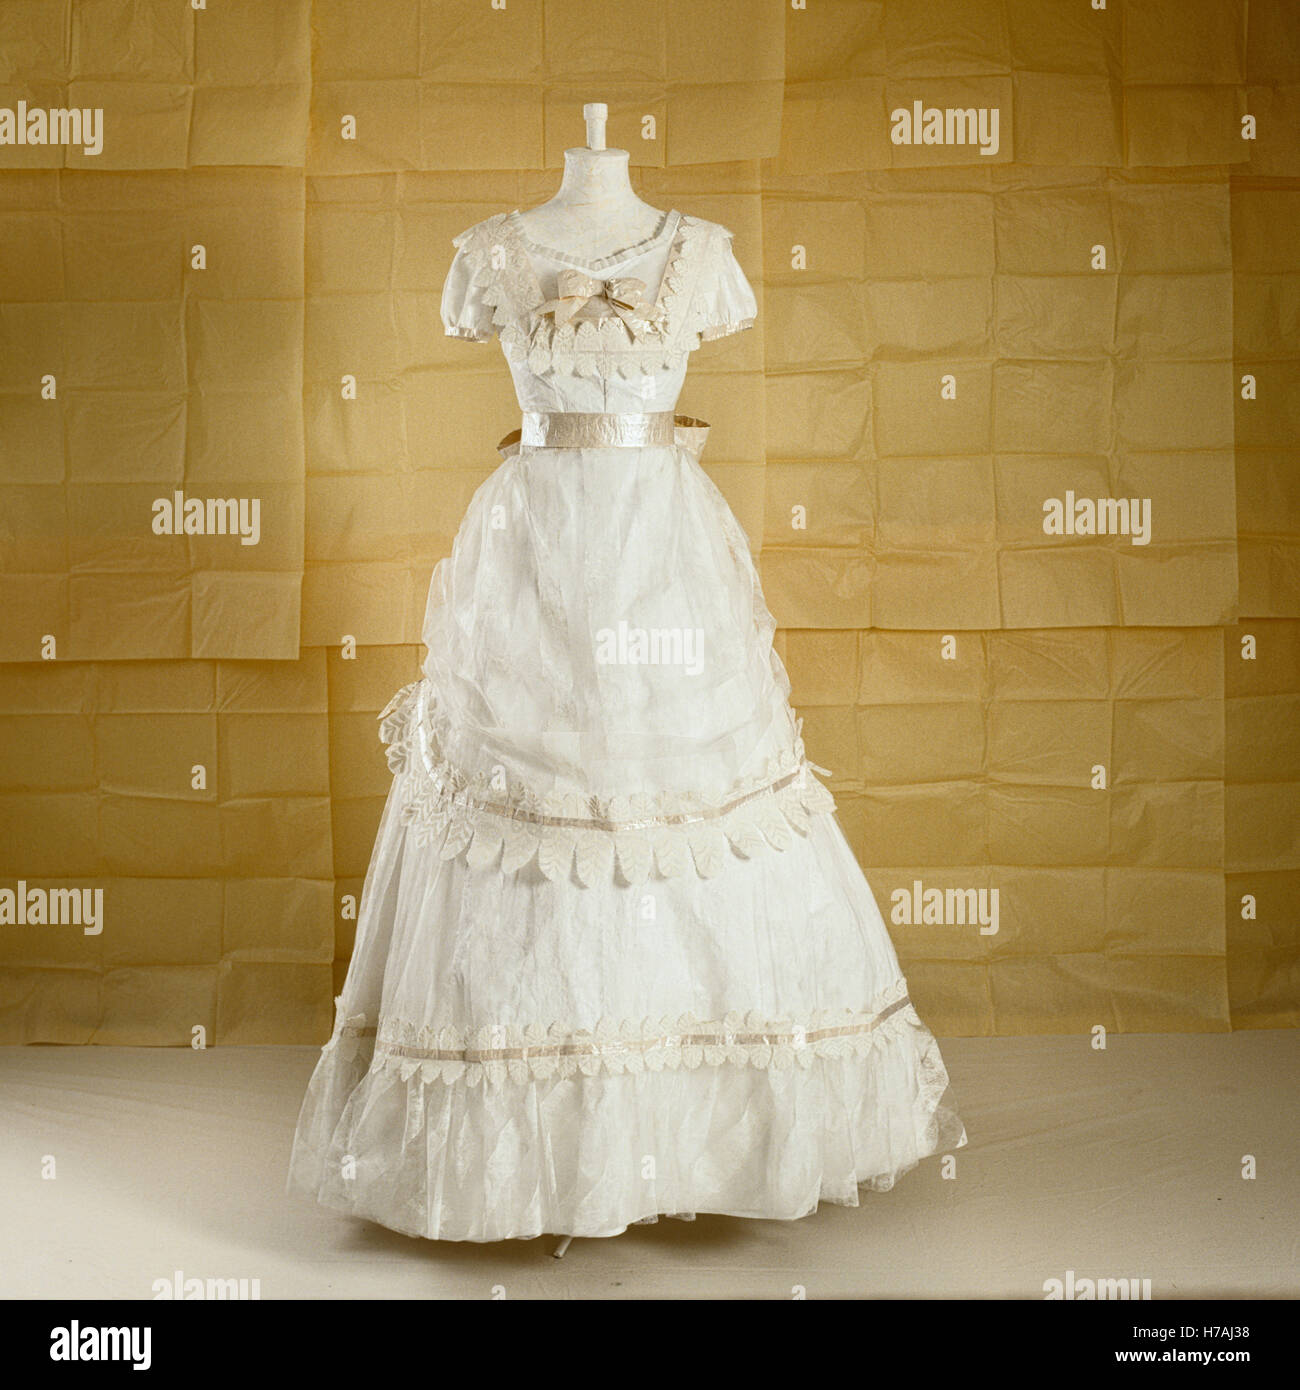 White lace short-sleeved and tiered historical replica paper dress by Isabelle de Borchgrave - Stock Image